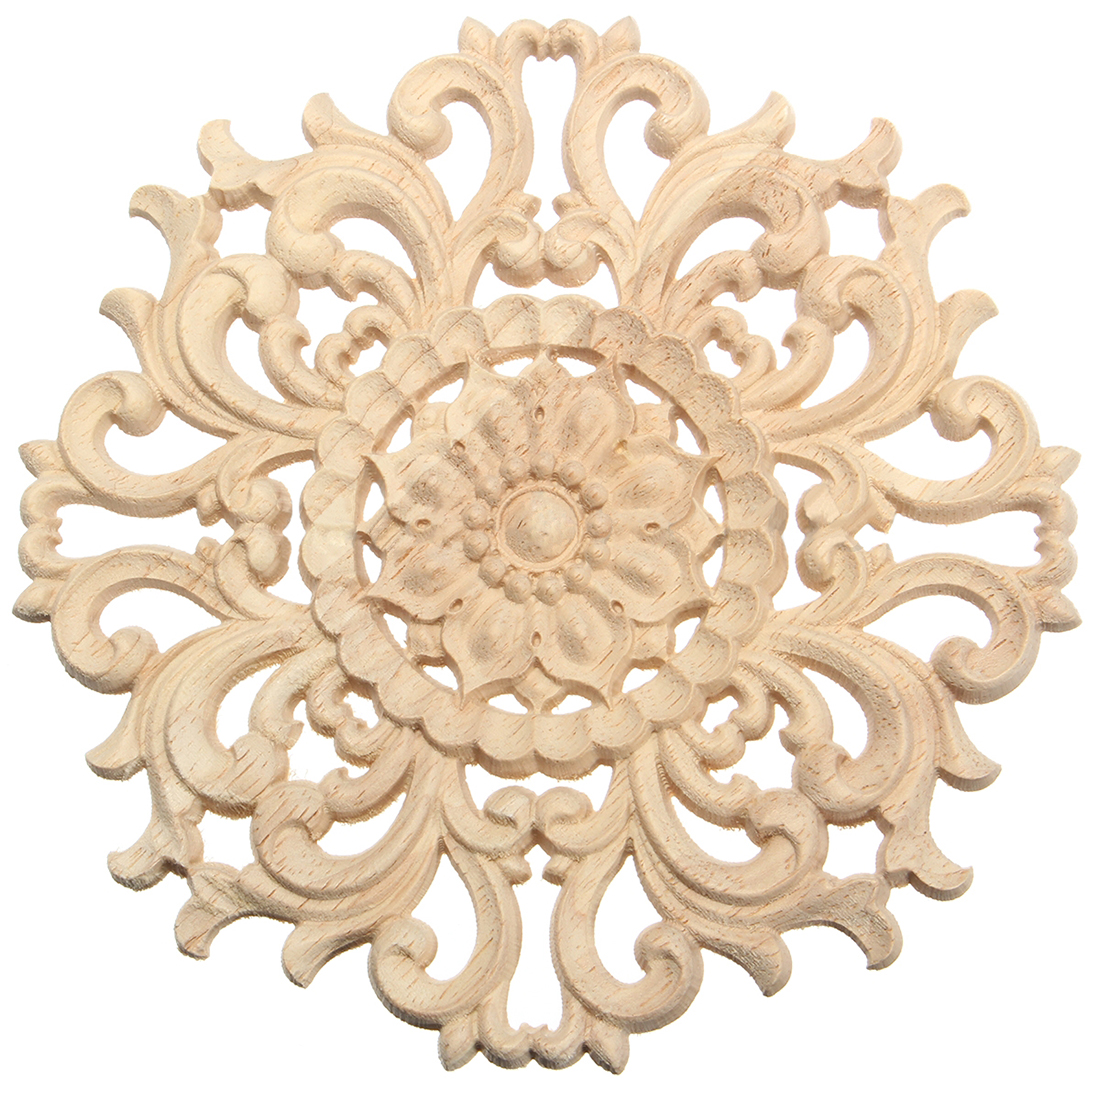 Colorful Wood Carved Wall Decor Image - The Wall Art Decorations ...